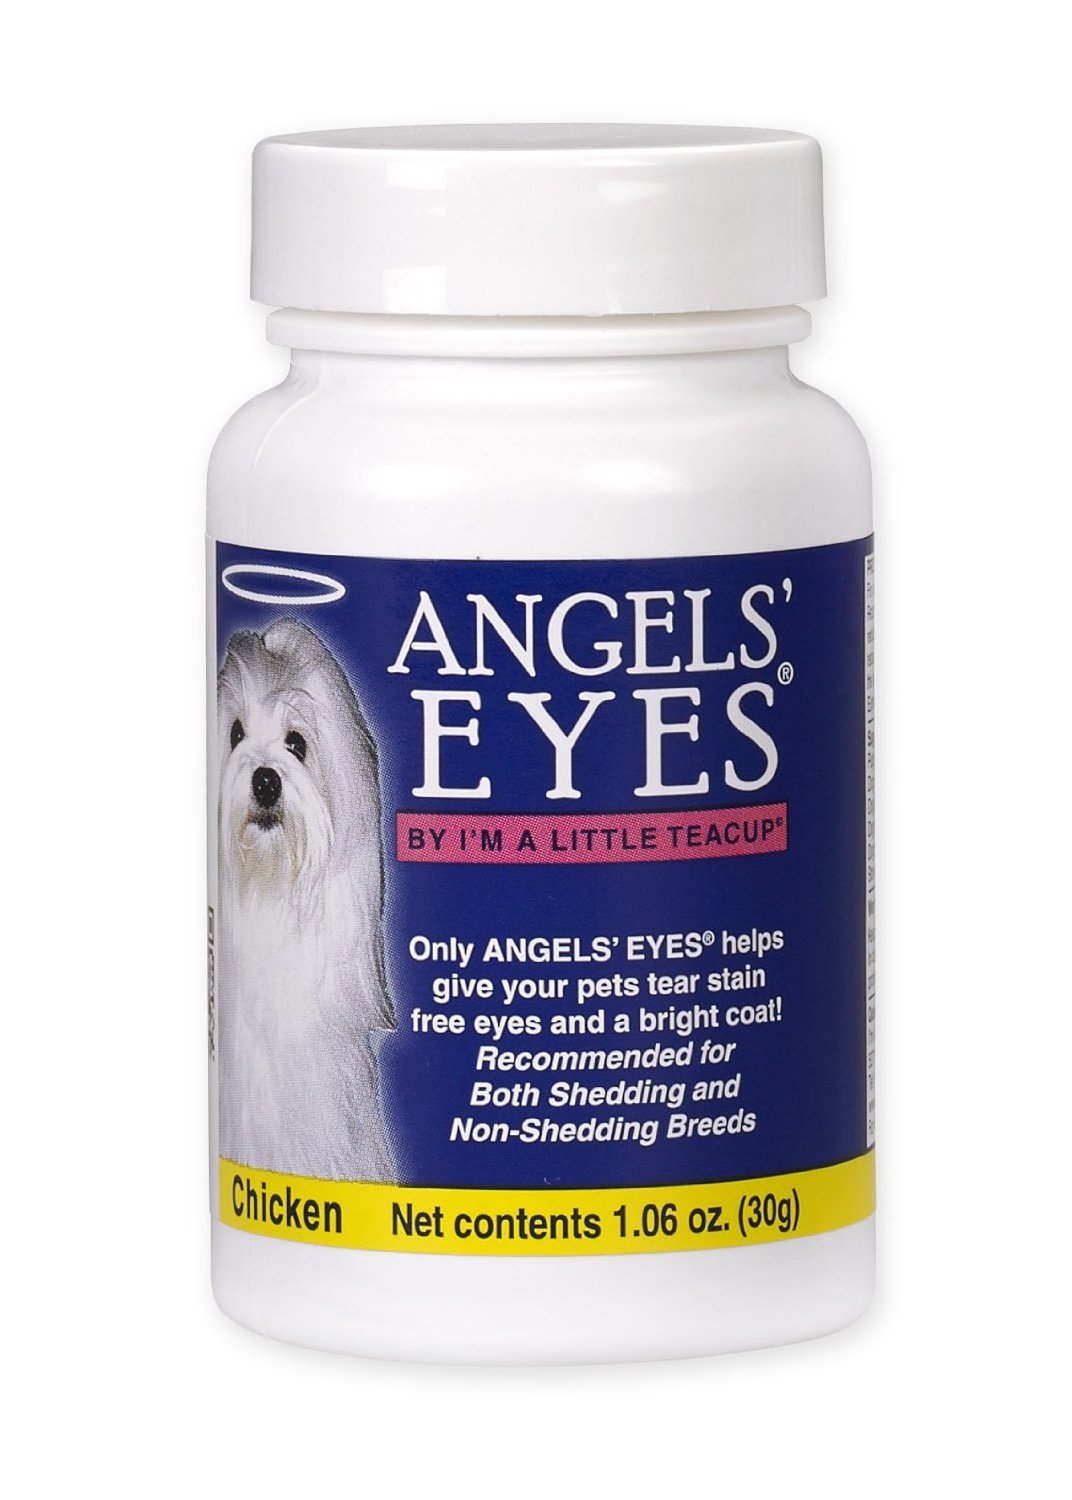 Angels' Eyes Tear-Stain Eliminator